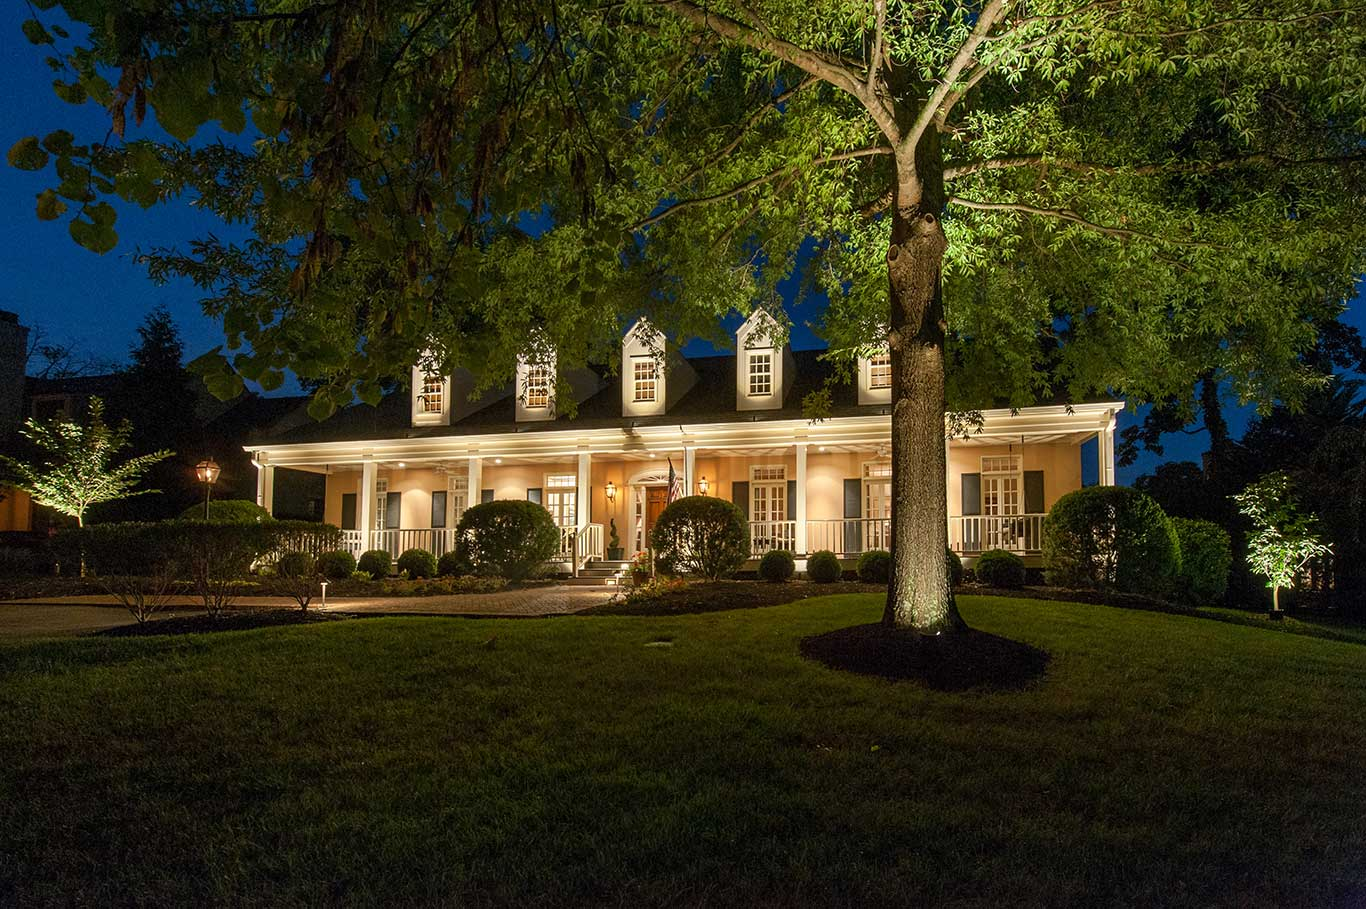 How to Light Your Home and Property for Security